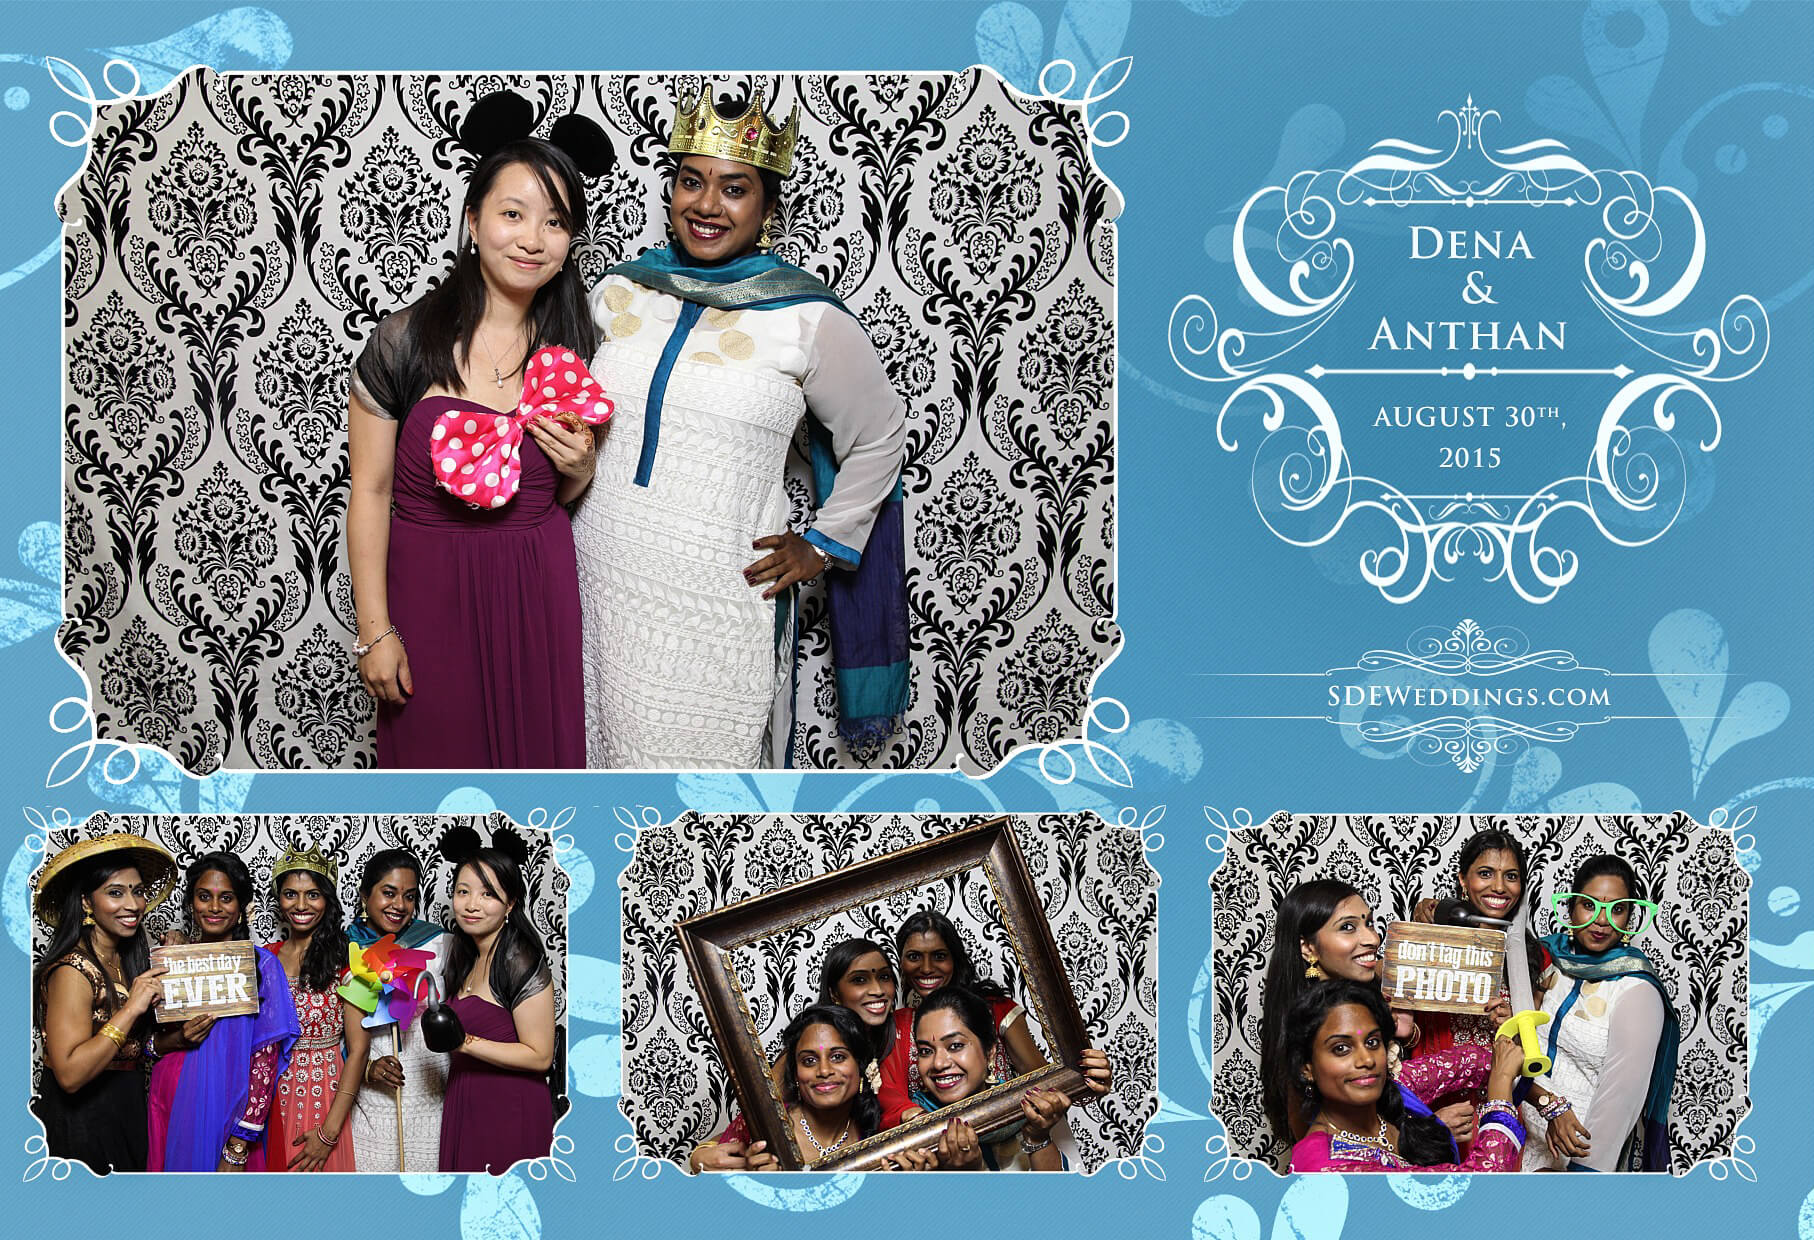 Toronto Photo Booth Rental at Peter and Paul Banquet Hall 4